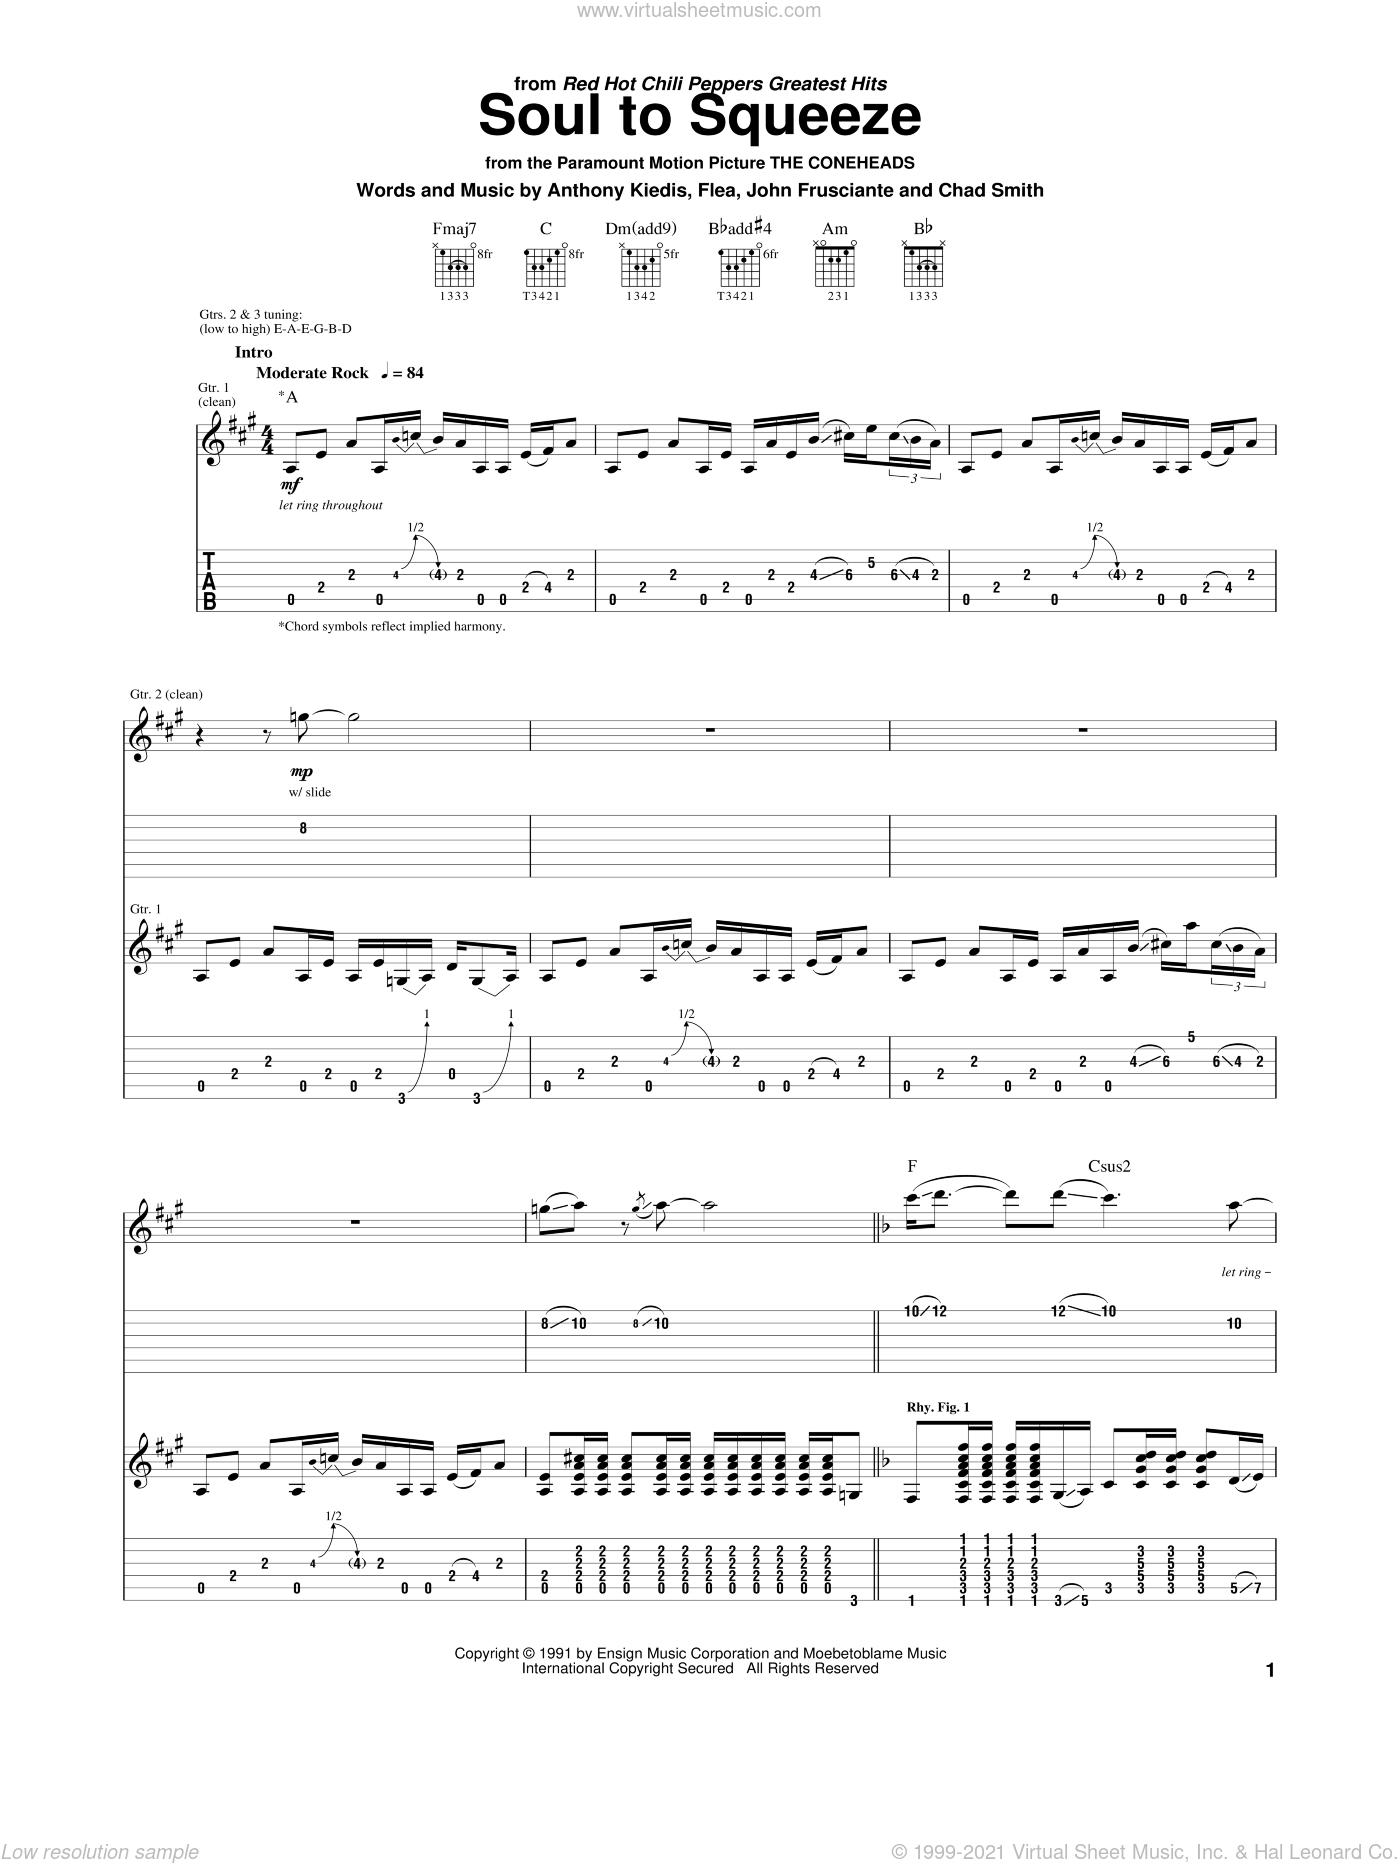 Soul To Squeeze sheet music for guitar (tablature) by Red Hot Chili Peppers, Anthony Kiedis, Flea and John Frusciante, intermediate skill level